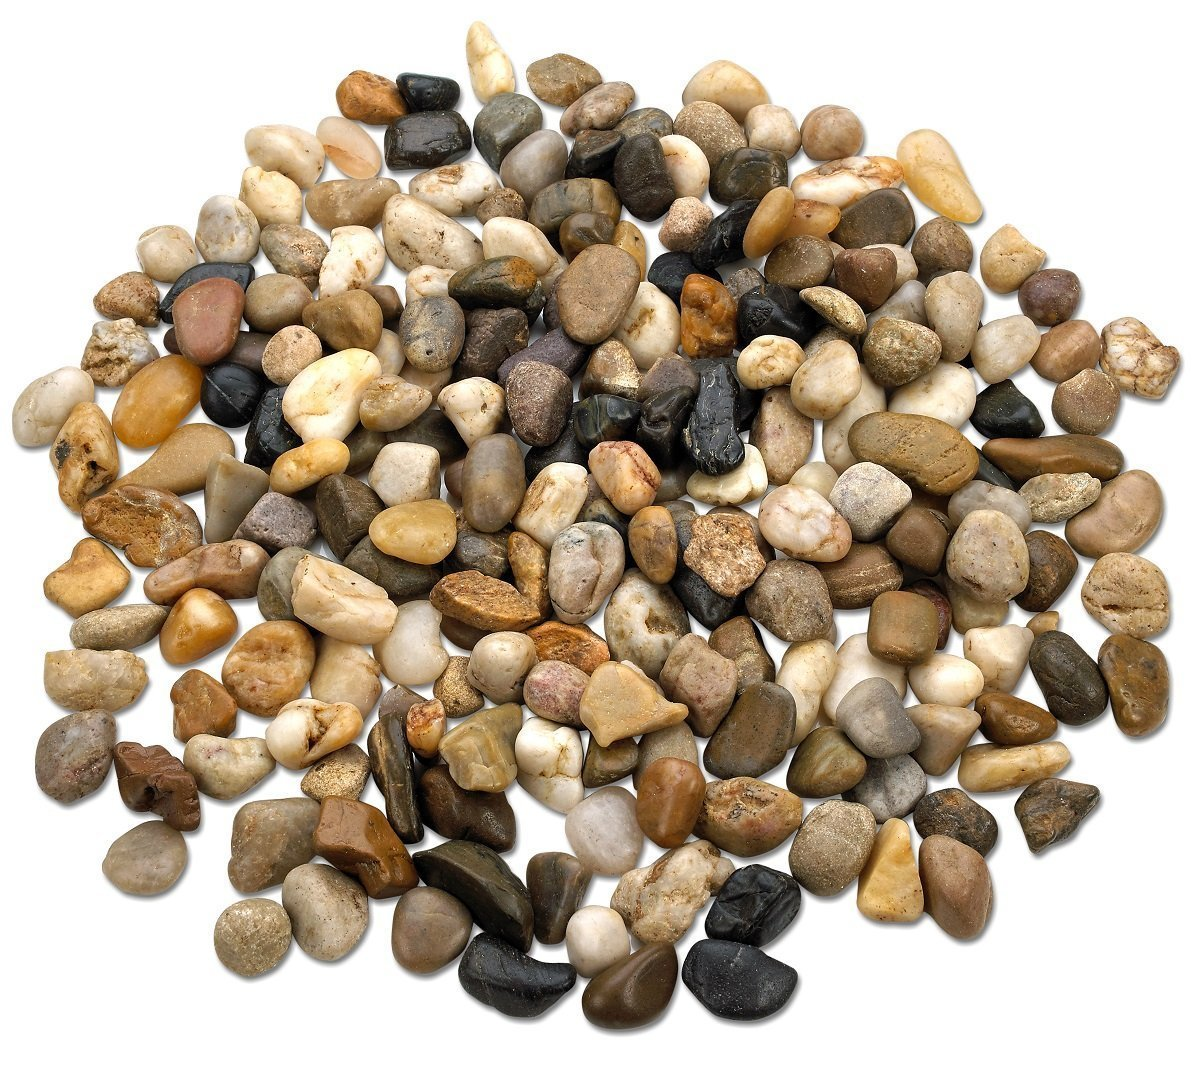 Cheap Stones And Pounds Find Stones And Pounds Deals On